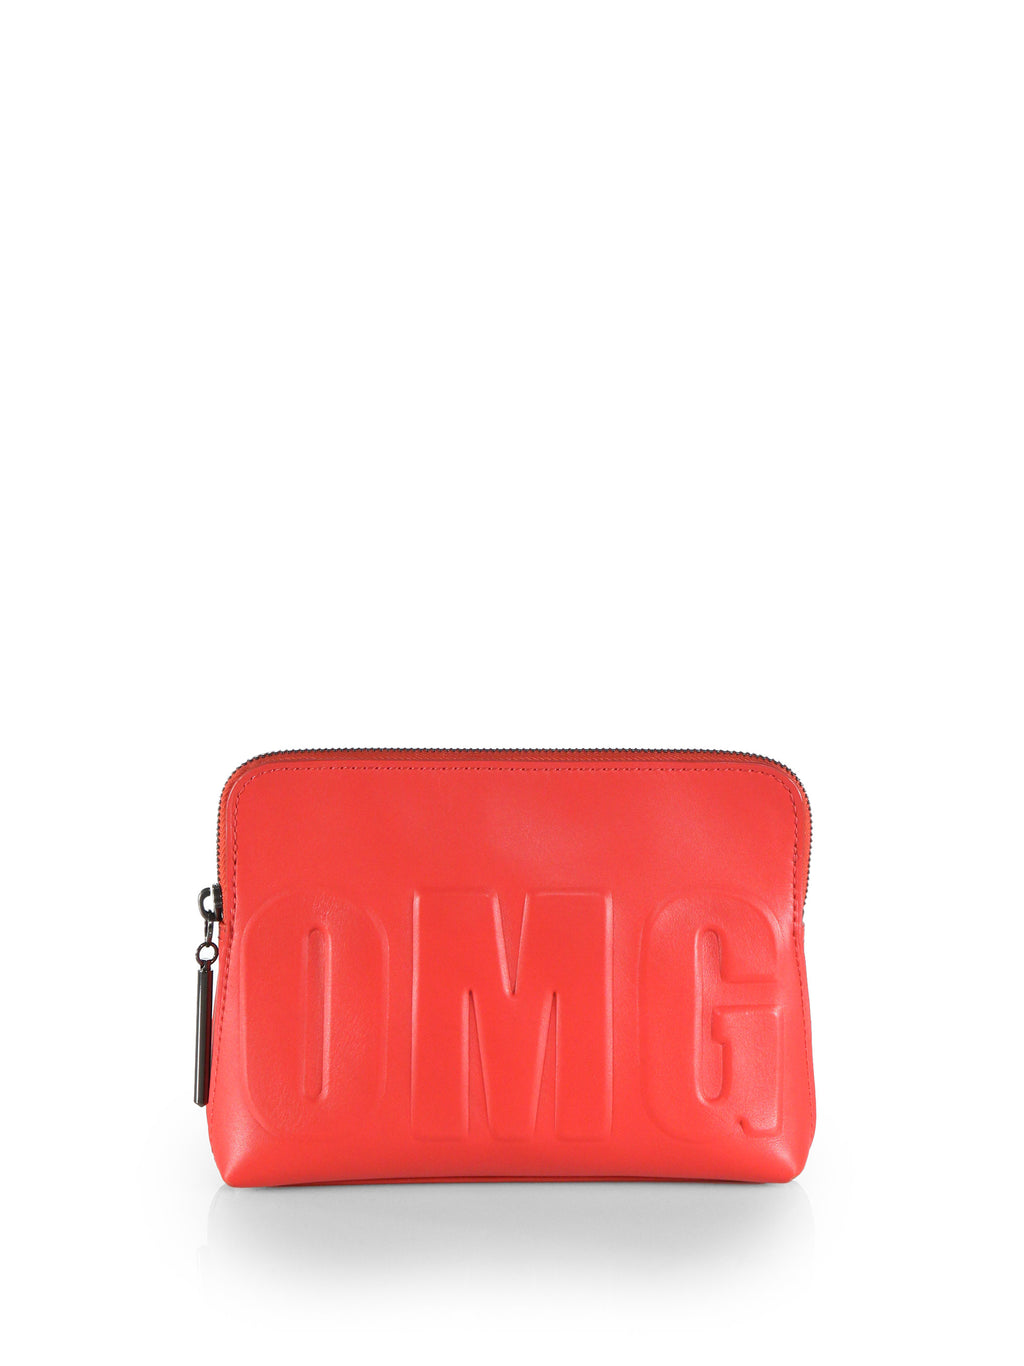 3.1 Phillip Lim 'OMG' Bag